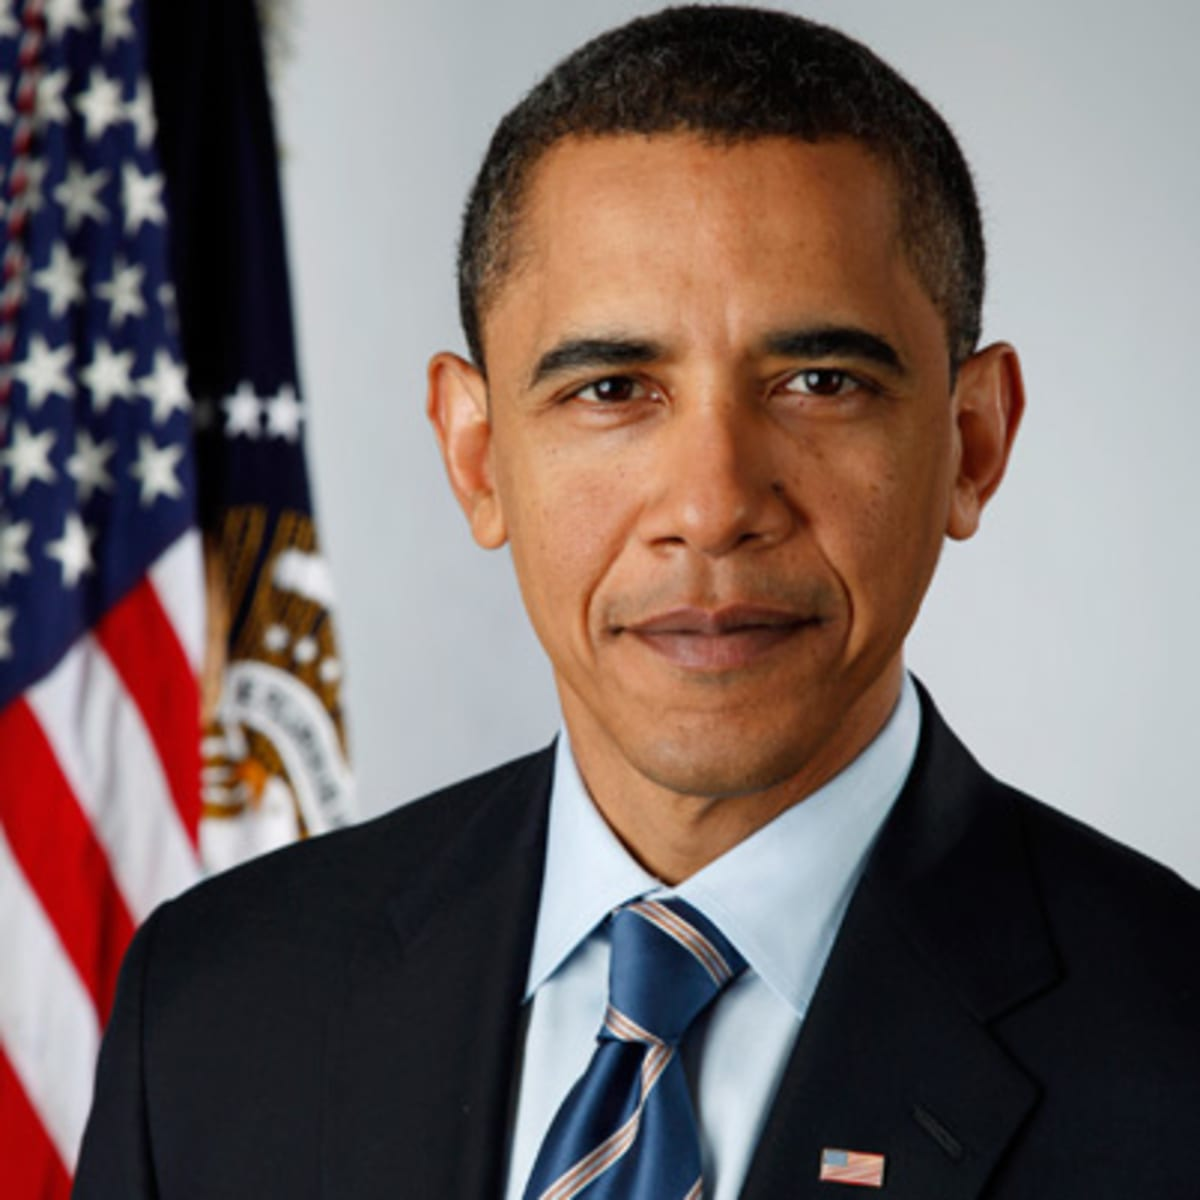 He currently resides in washington, d.c. Barack Obama Presidency Education Mother Biography